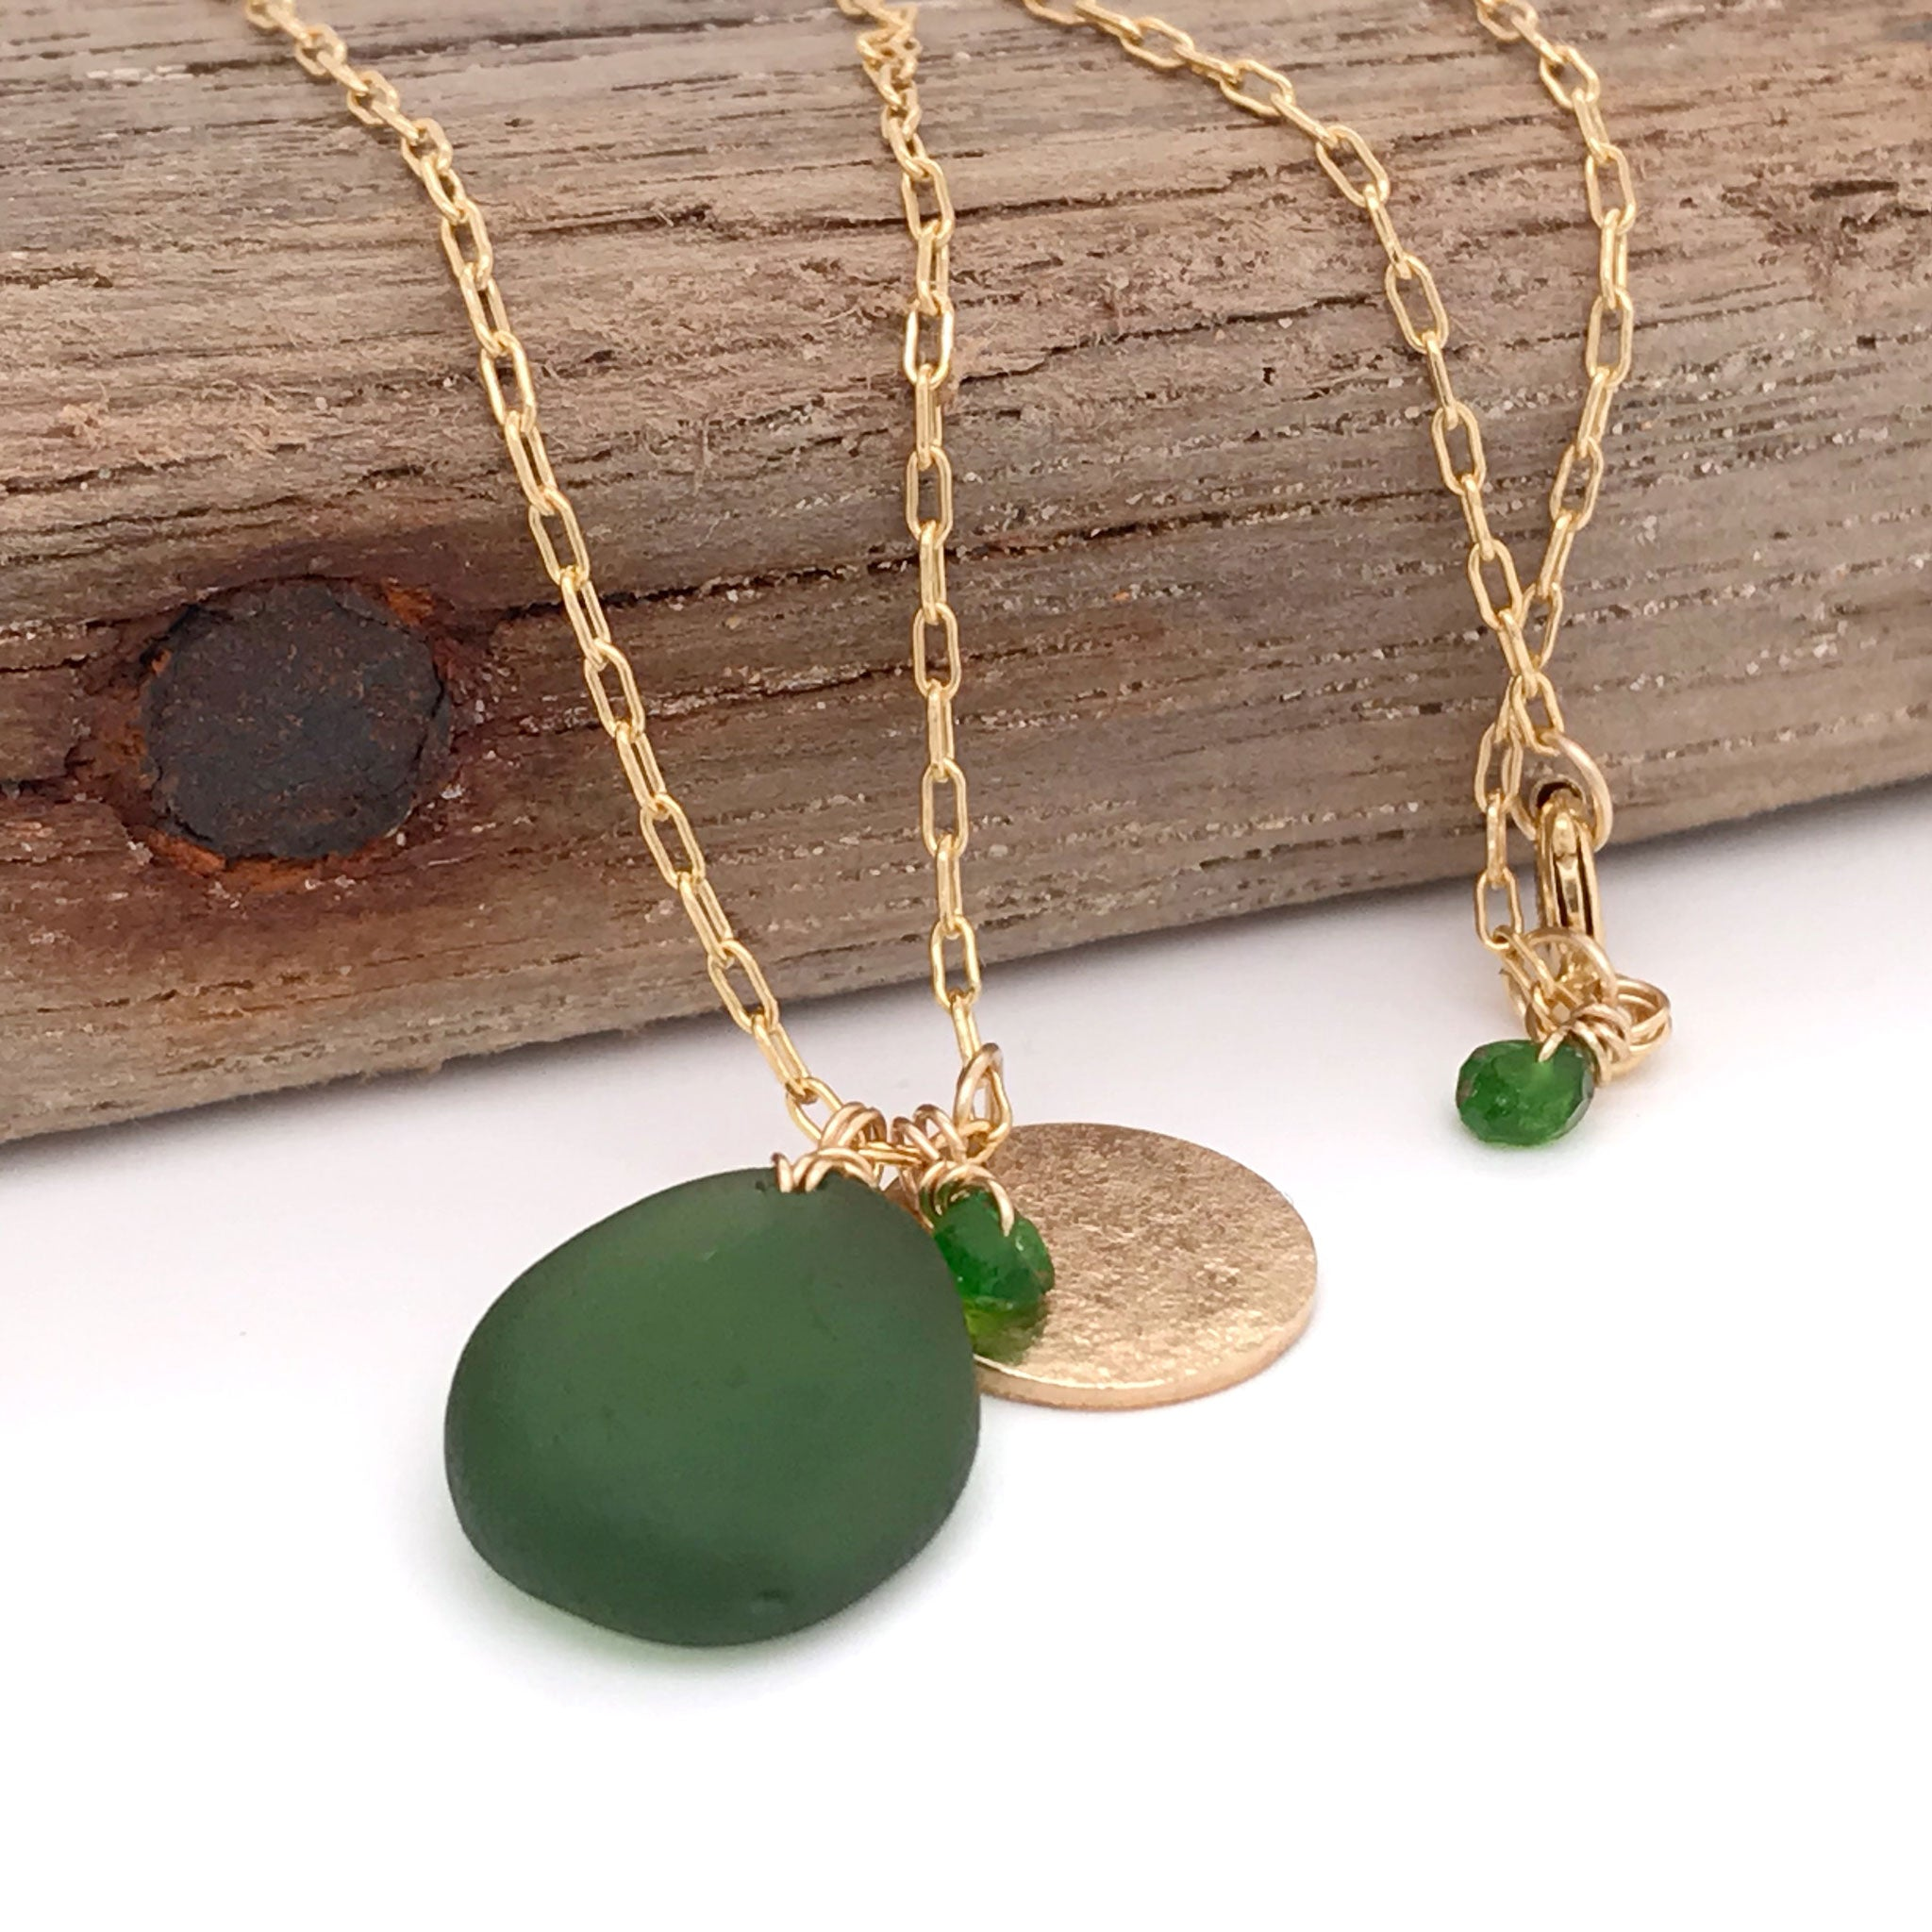 green seaglass necklace with gold disc charm and tsavorite stones kriket Broadhurst jewellery